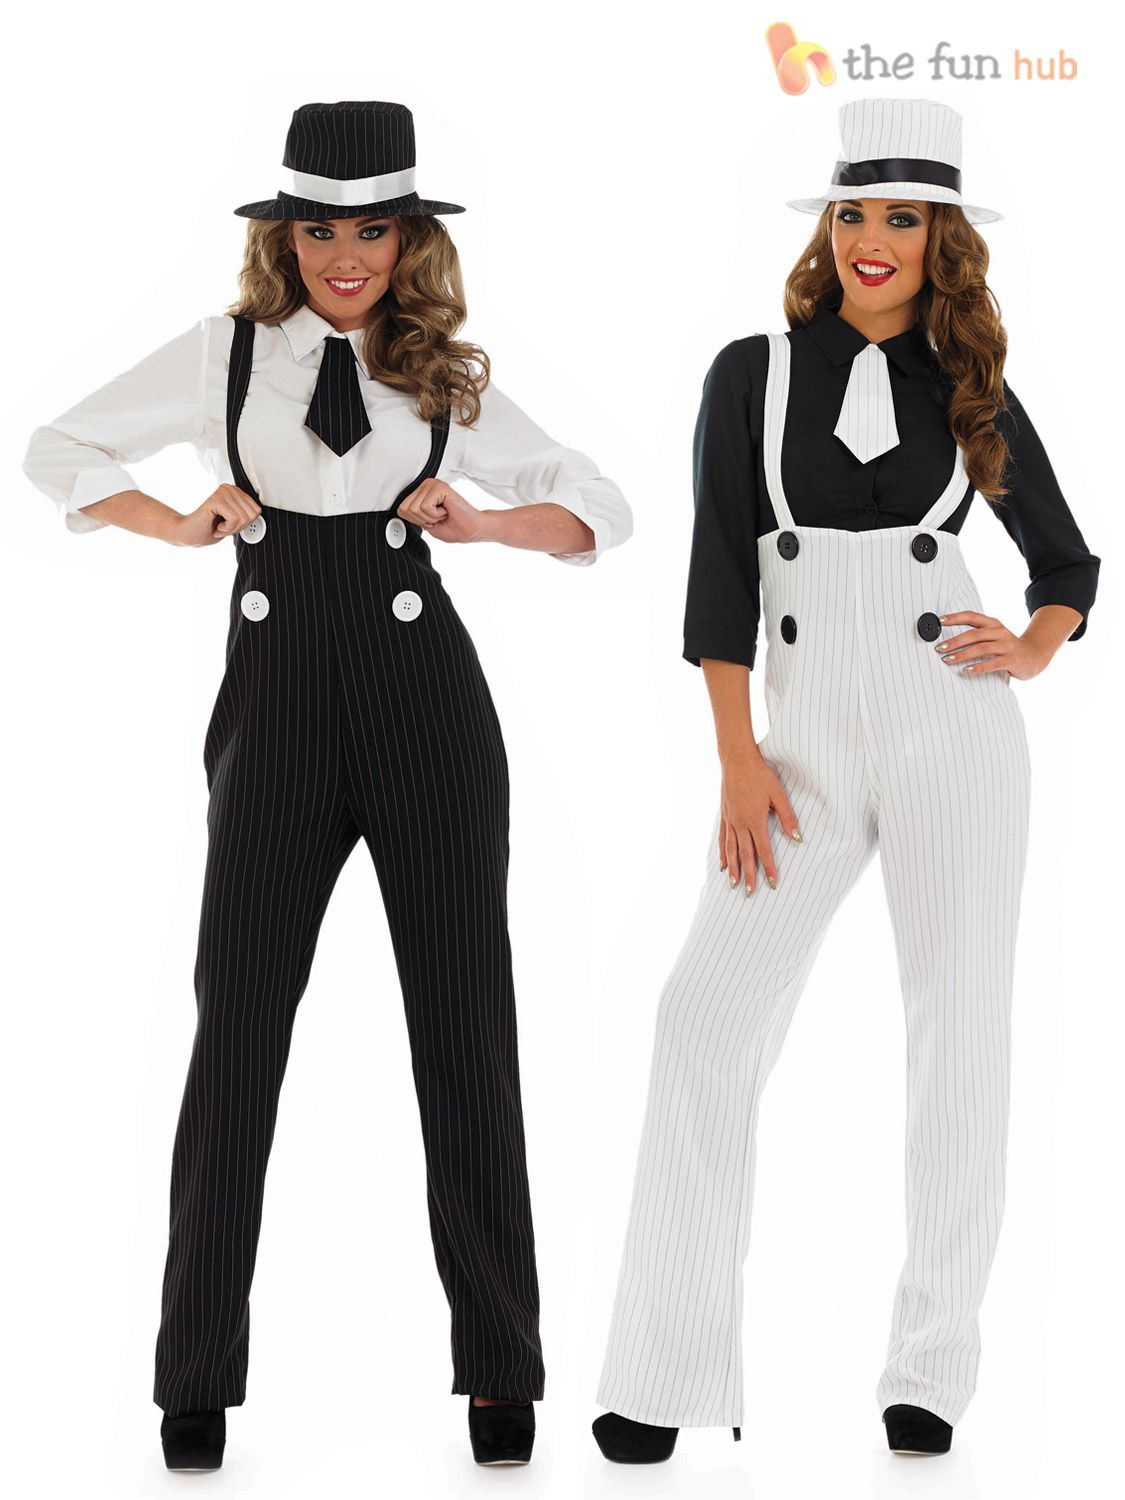 Details about Ladies Pinstripe Gangster Suit Costume Fancy